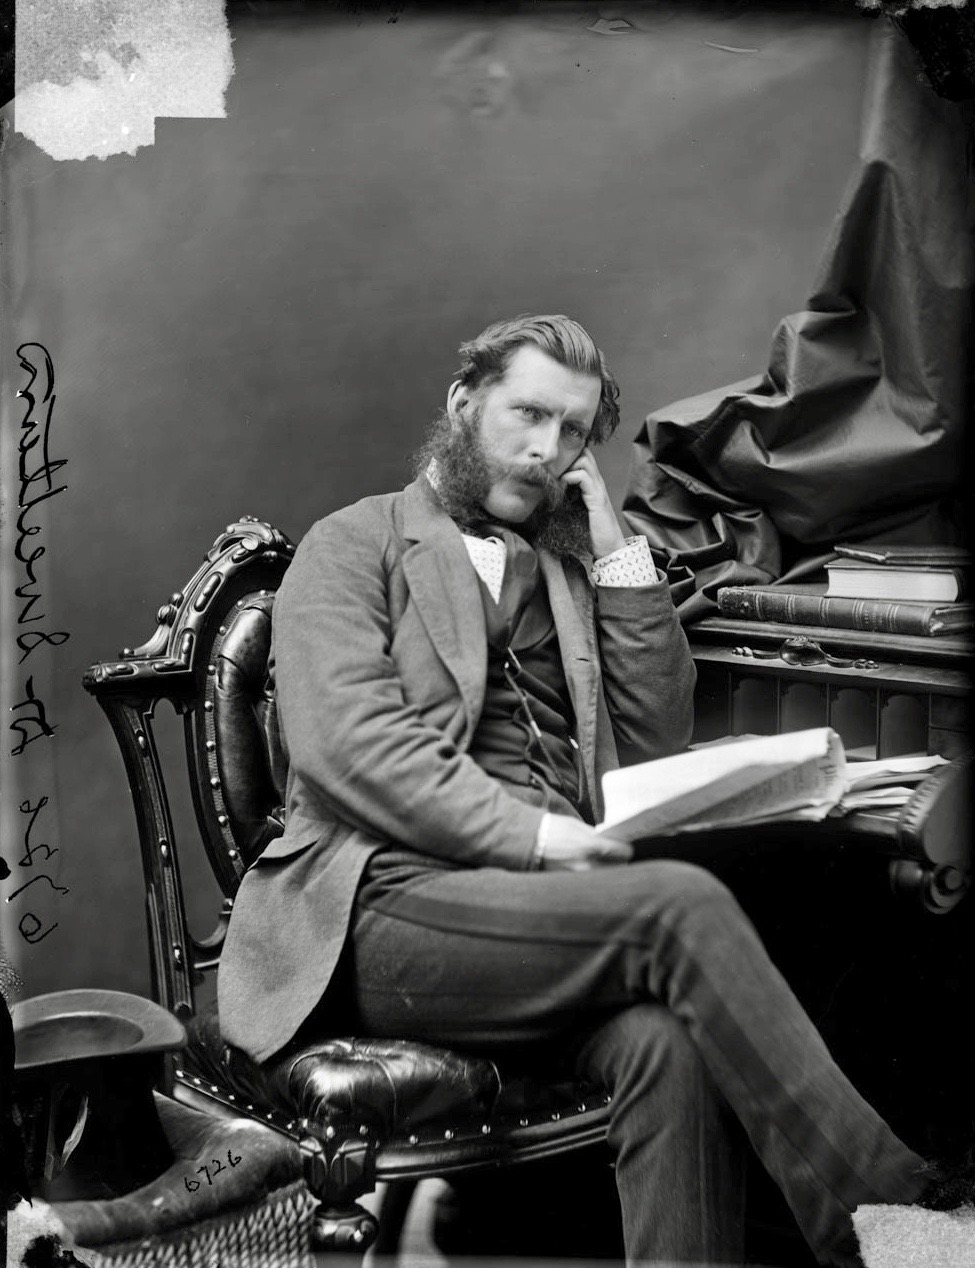 Trustee John: Dr. Sweetland in thoughtful repose in 1870, before the  distinguished Ottawa surgeon took up his role as one of the Stanley Cup's  original ...